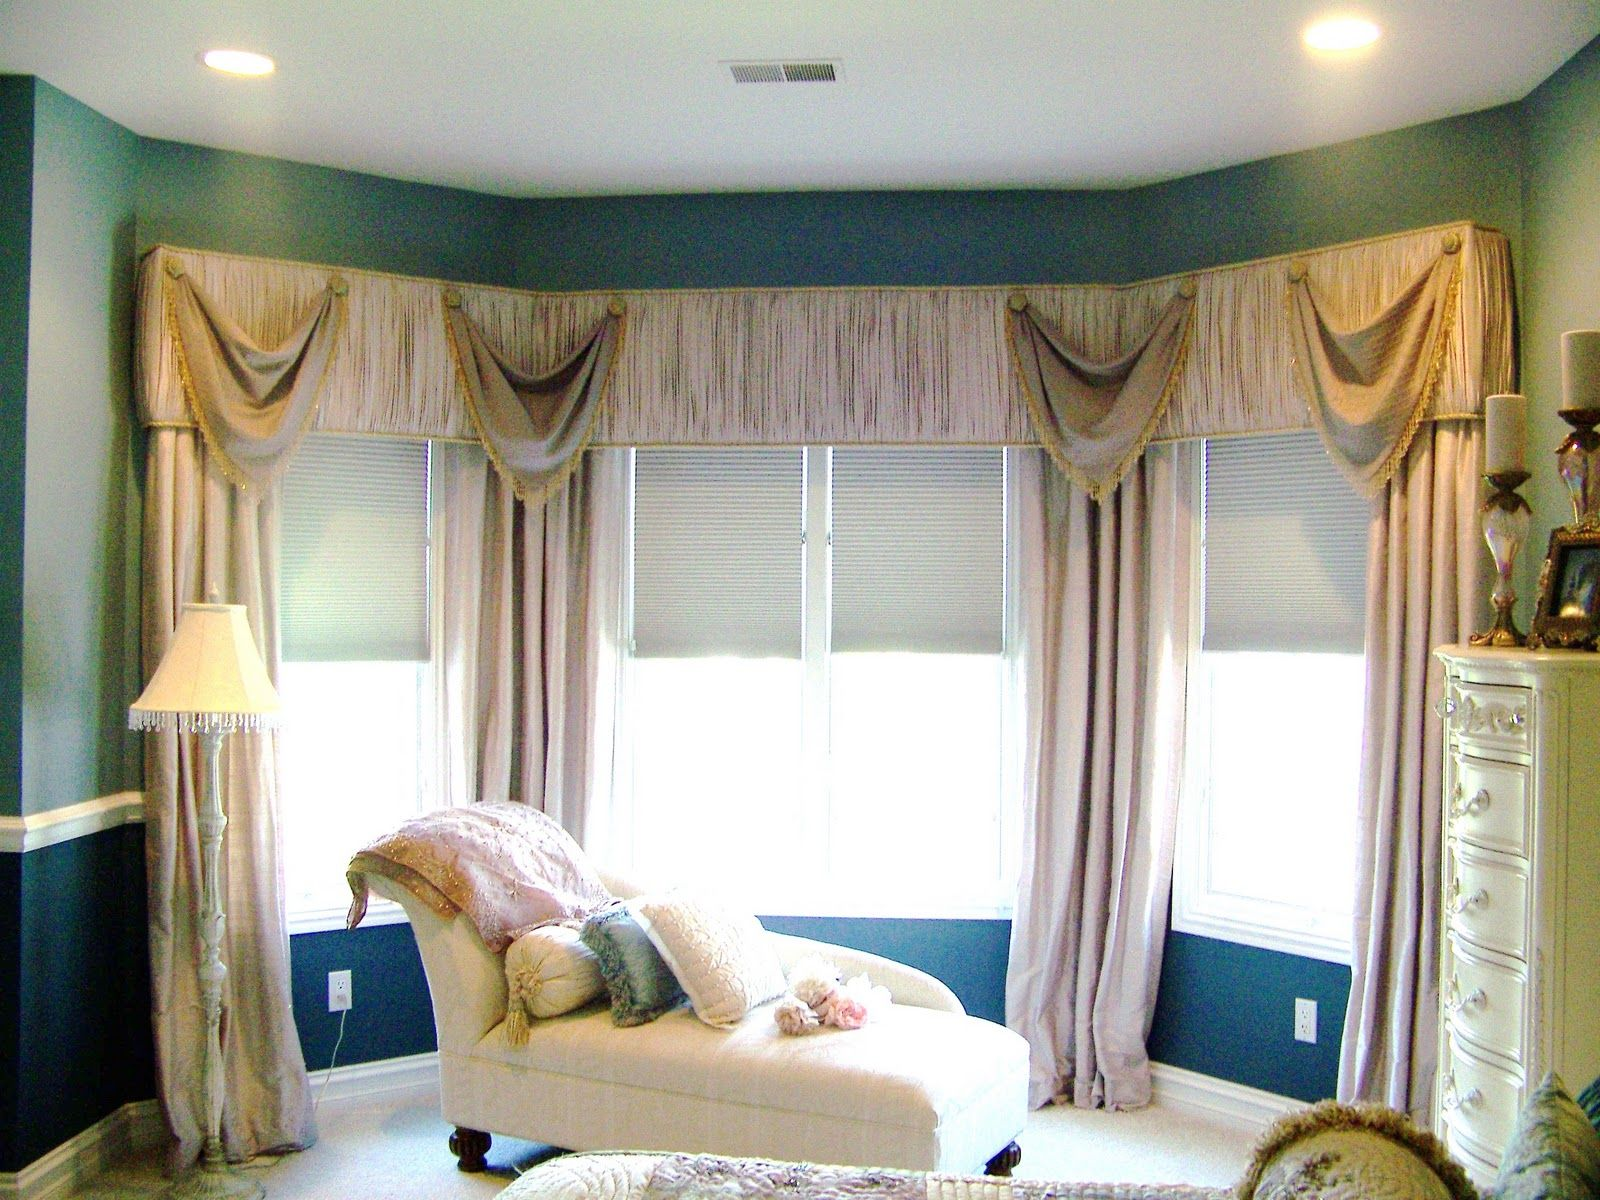 Comfortable Bedroom Decorated With Long Curtain On Bay ...